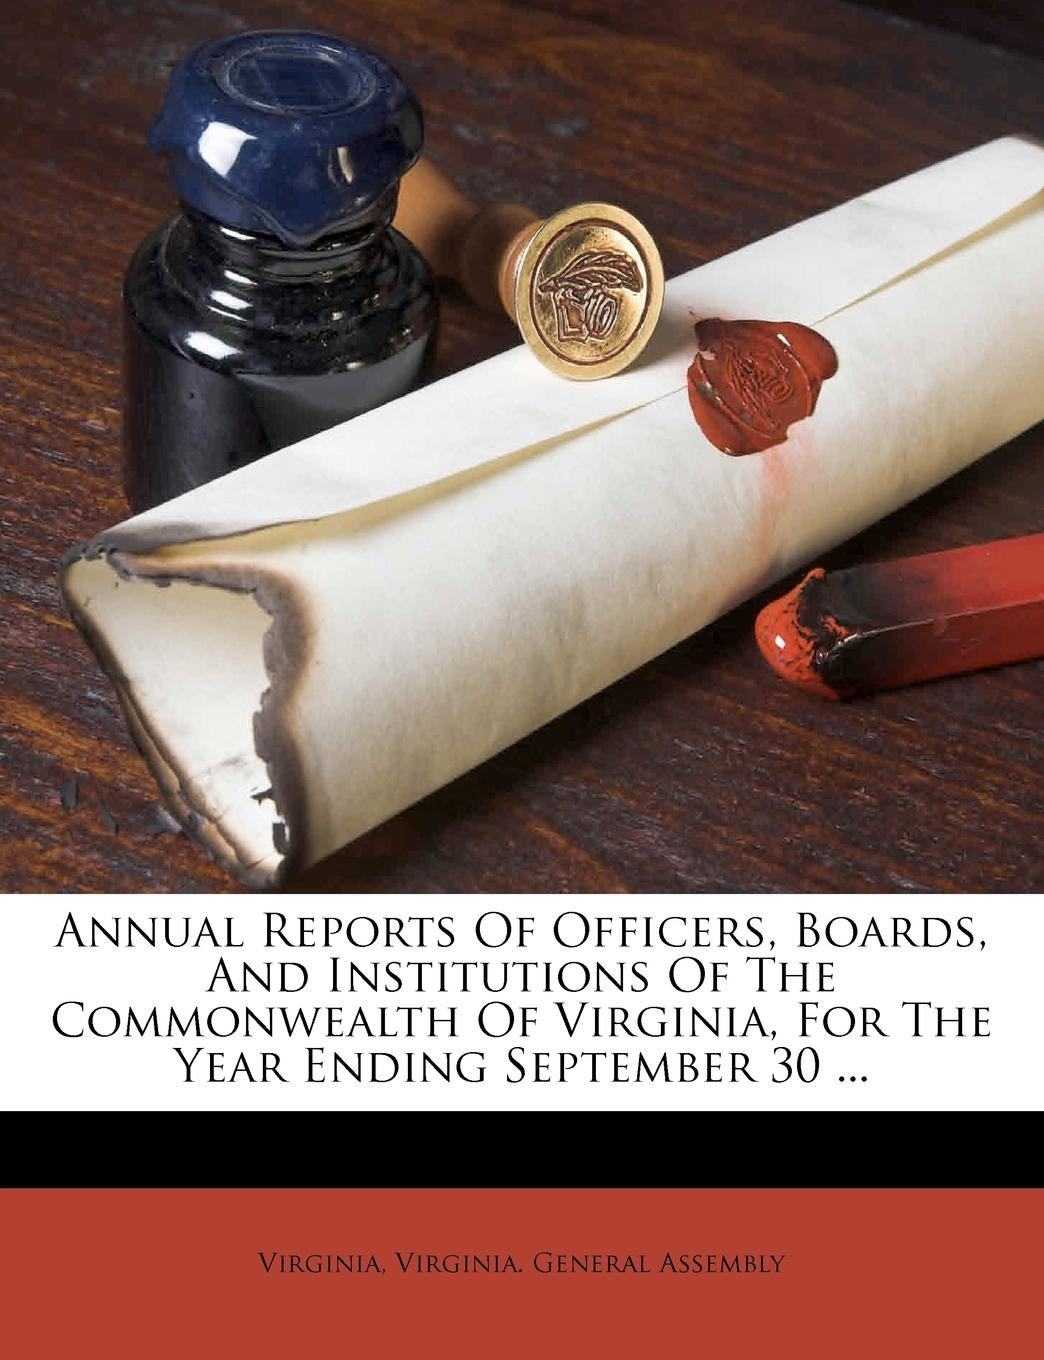 Download Annual Reports Of Officers, Boards, And Institutions Of The Commonwealth Of Virginia, For The Year Ending September 30 ... ebook